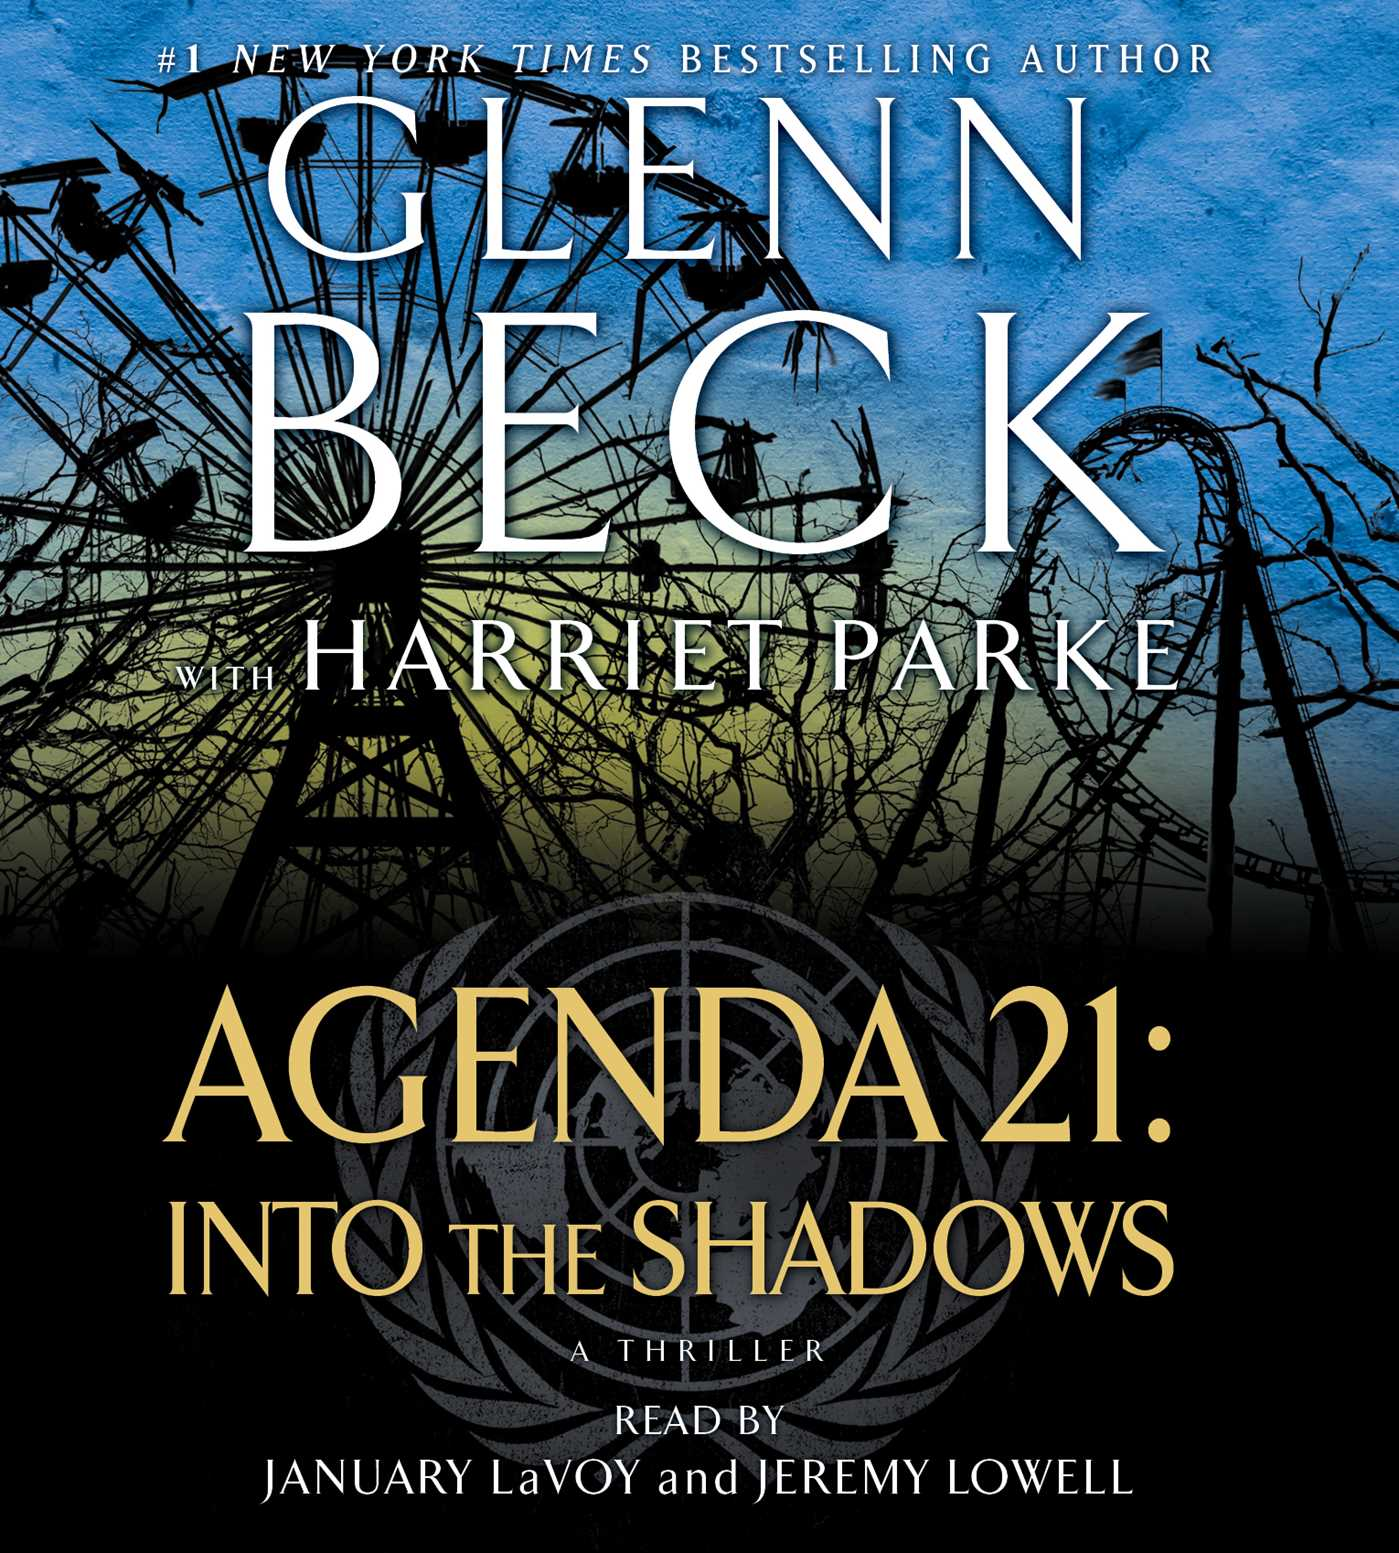 Agenda-21-into-the-shadows-9781442374263_hr